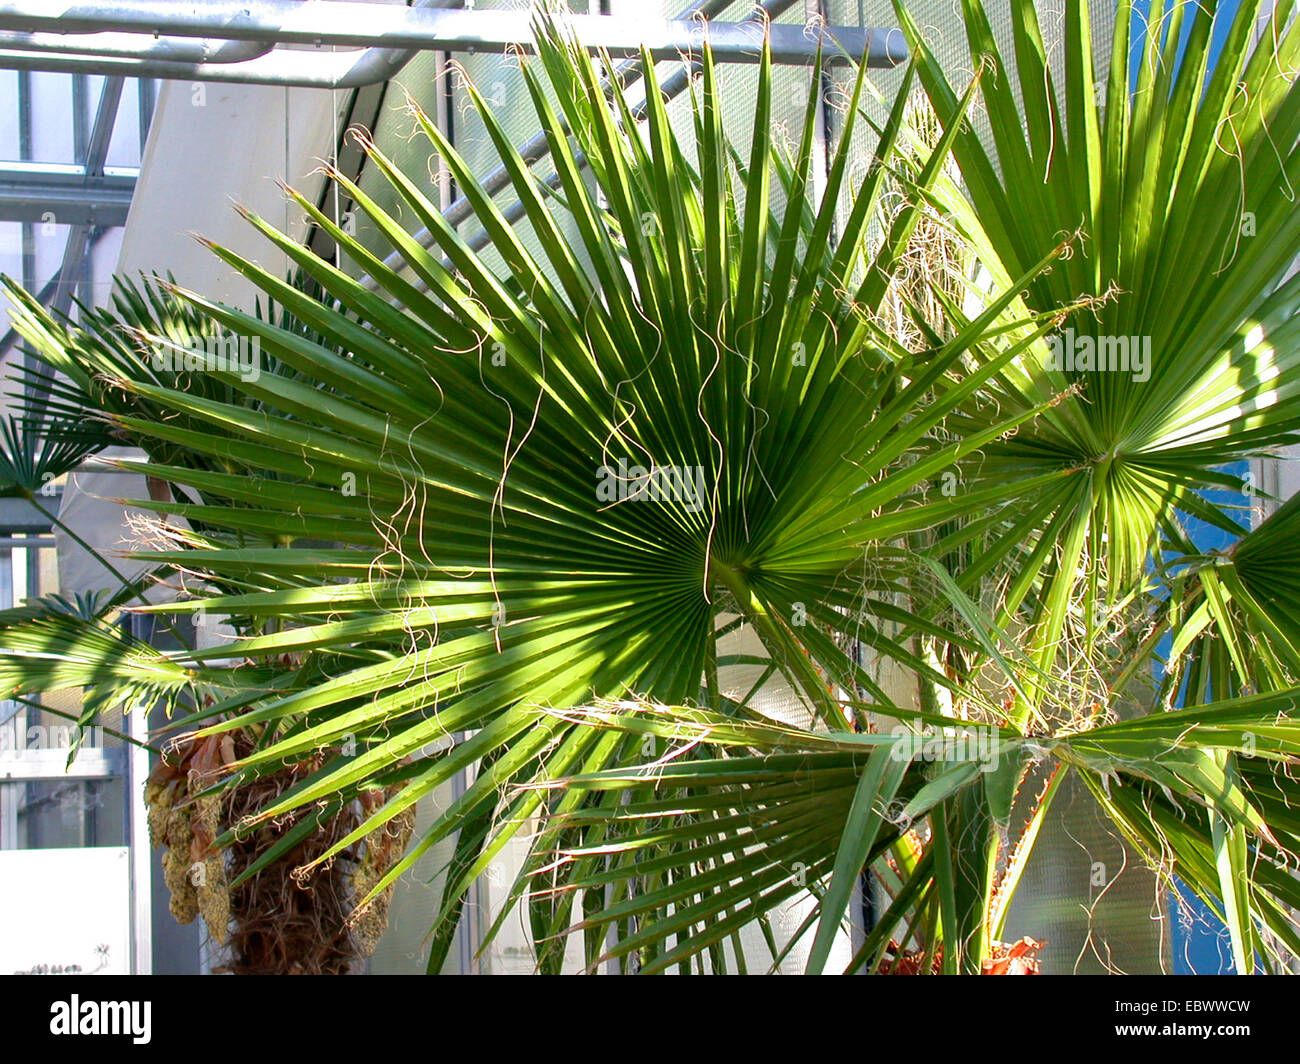 Palm House Plant Id on tropical plant id, house plant bugs identification, house plant name, house plant identification guide, house plant identification by flower, house plant wall, house plant identification by leaf, aquarium plant id, house plant propagation, house plant pests,